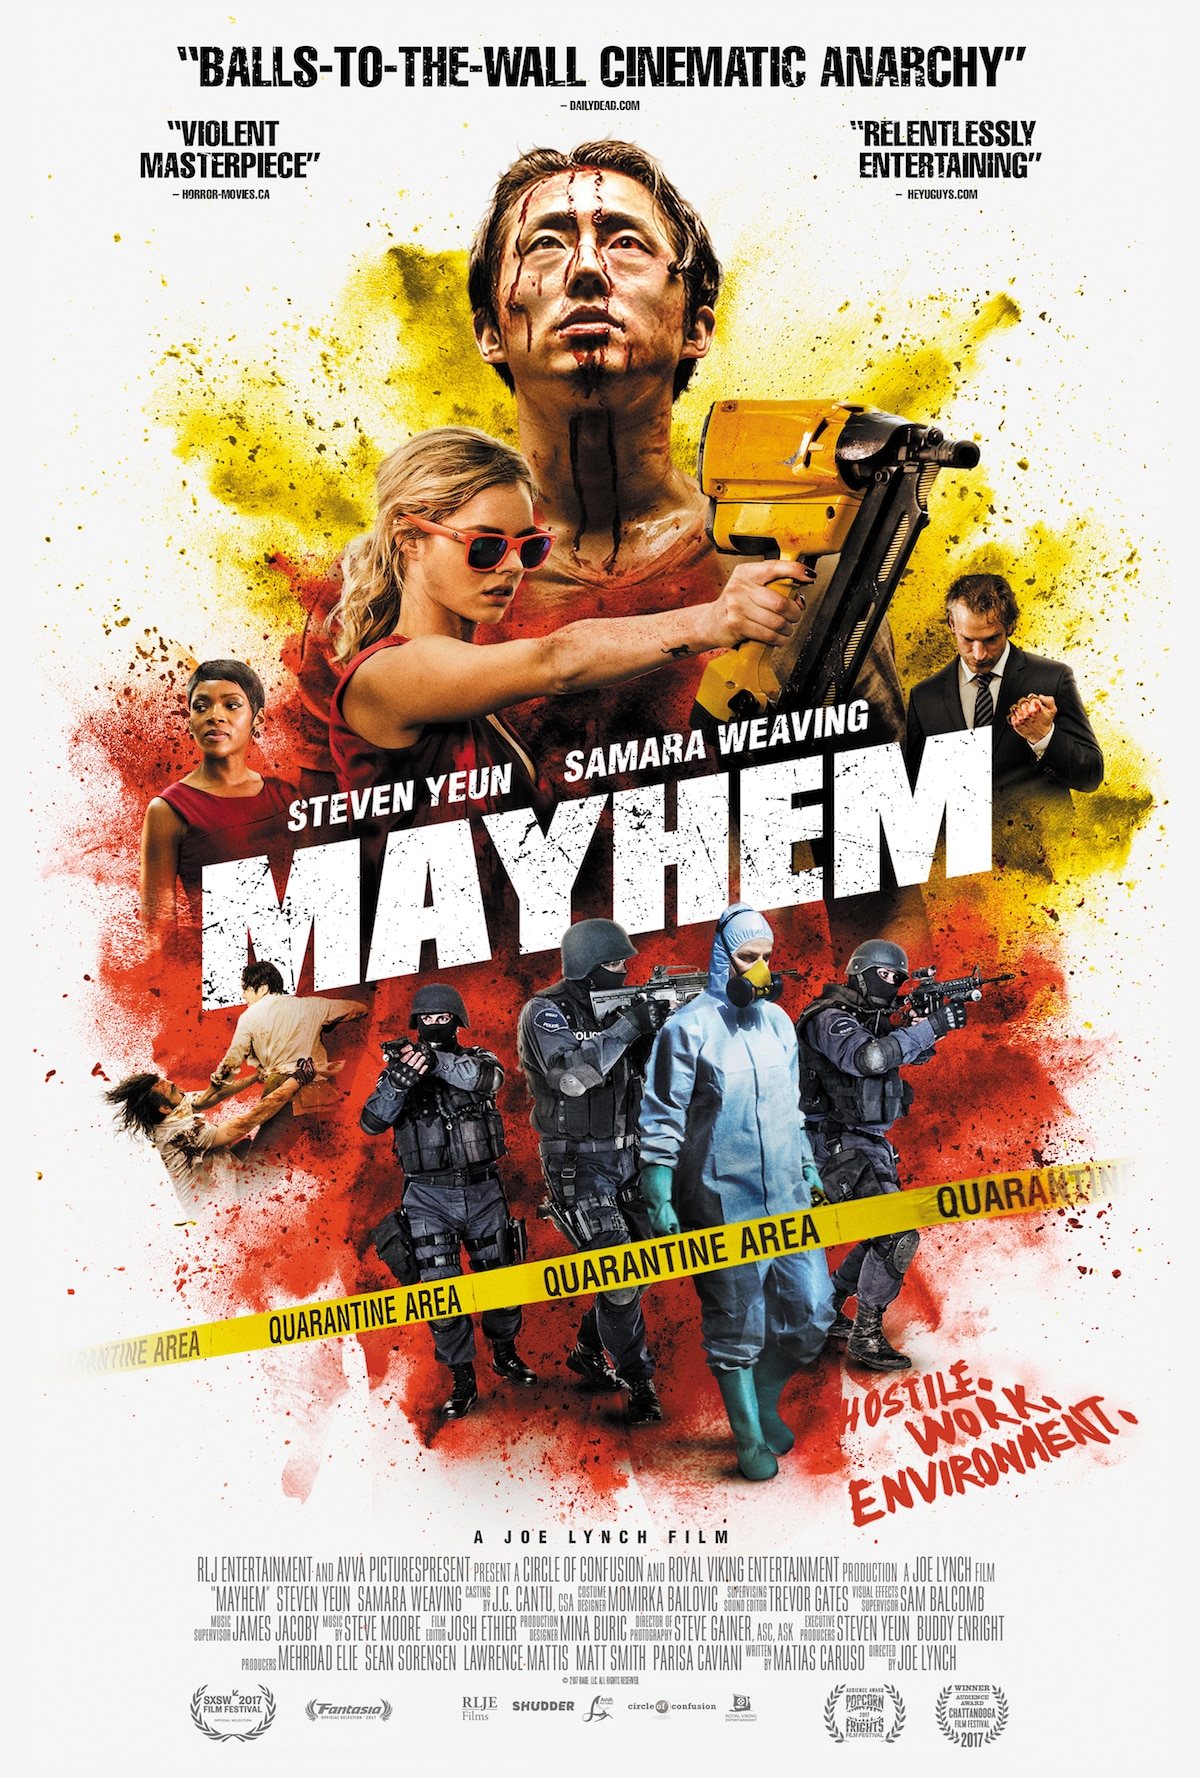 MAYHEM Poster image 2764X4096 V3 - Attention Los Angeles: See Mayhem and Watch Us Host the Q&A Panel!